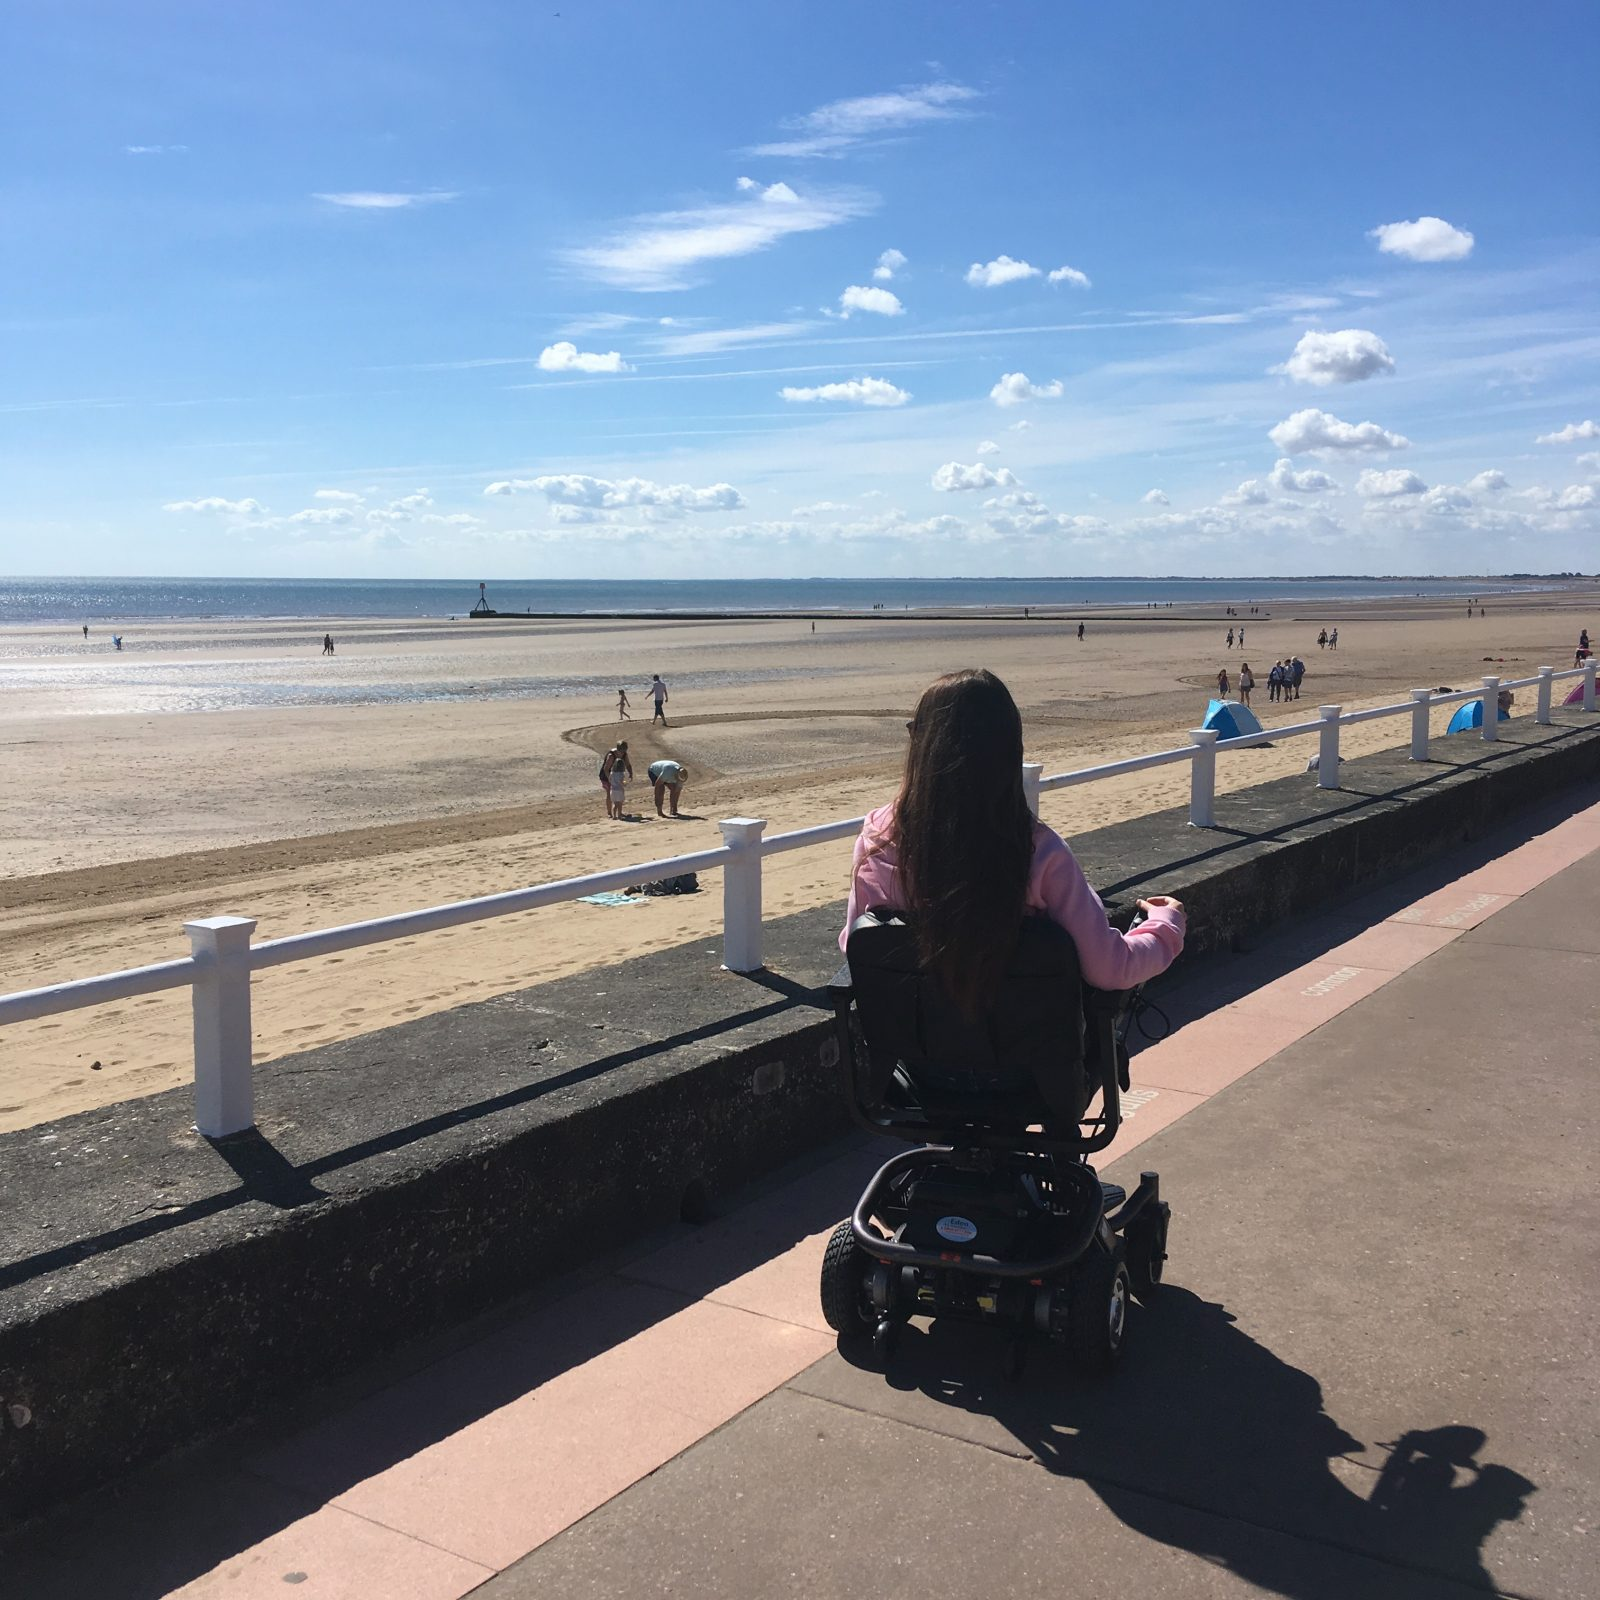 pippa on seaside promenade in powerchair, back to camera